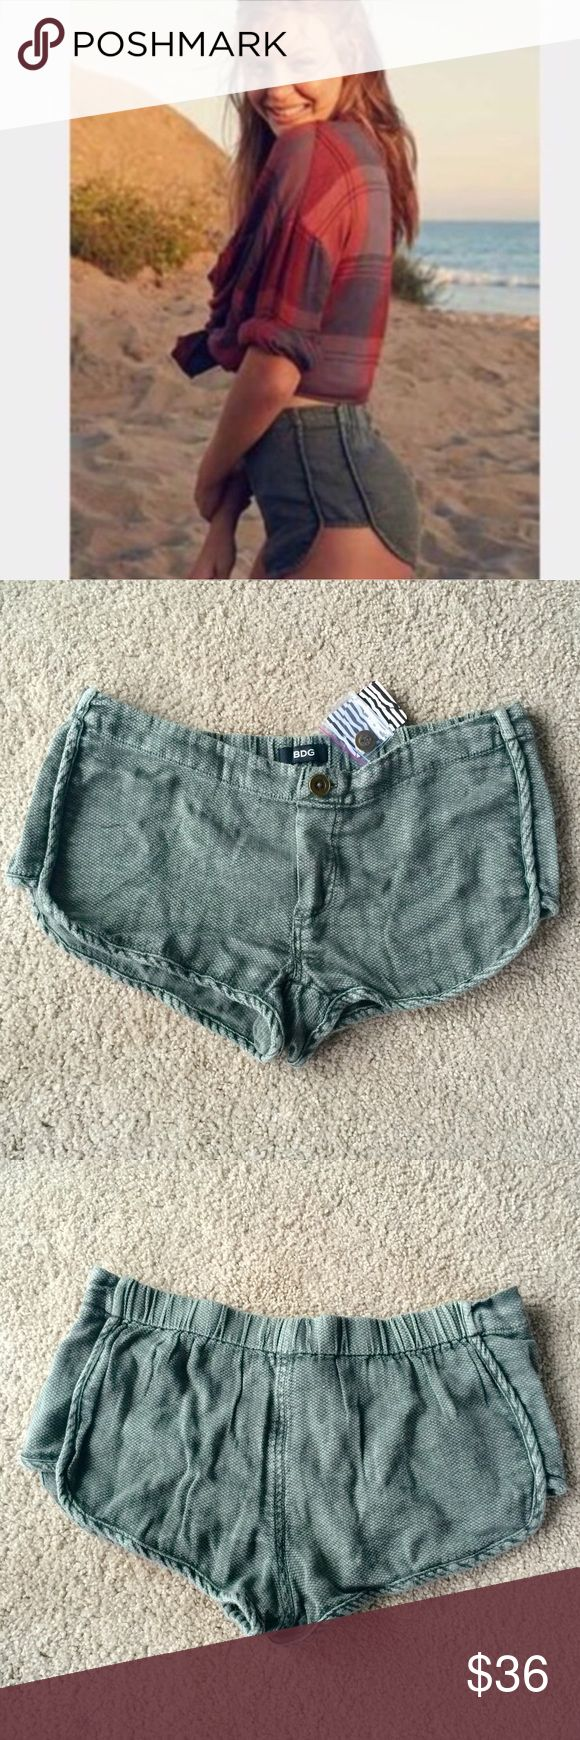 ❗️1 LEFT Urban Outfitters Olive Shorts NWT $39 ❗️1 LEFT Urban Outfitters Olive Shorts. NWT retails $39. Size medium. Feel free to make an offer! New Year Cleanout Sale--I consider all reasonable offers on individual items & bundles. Current bundle deal ends today!;-) Urban Outfitters Shorts